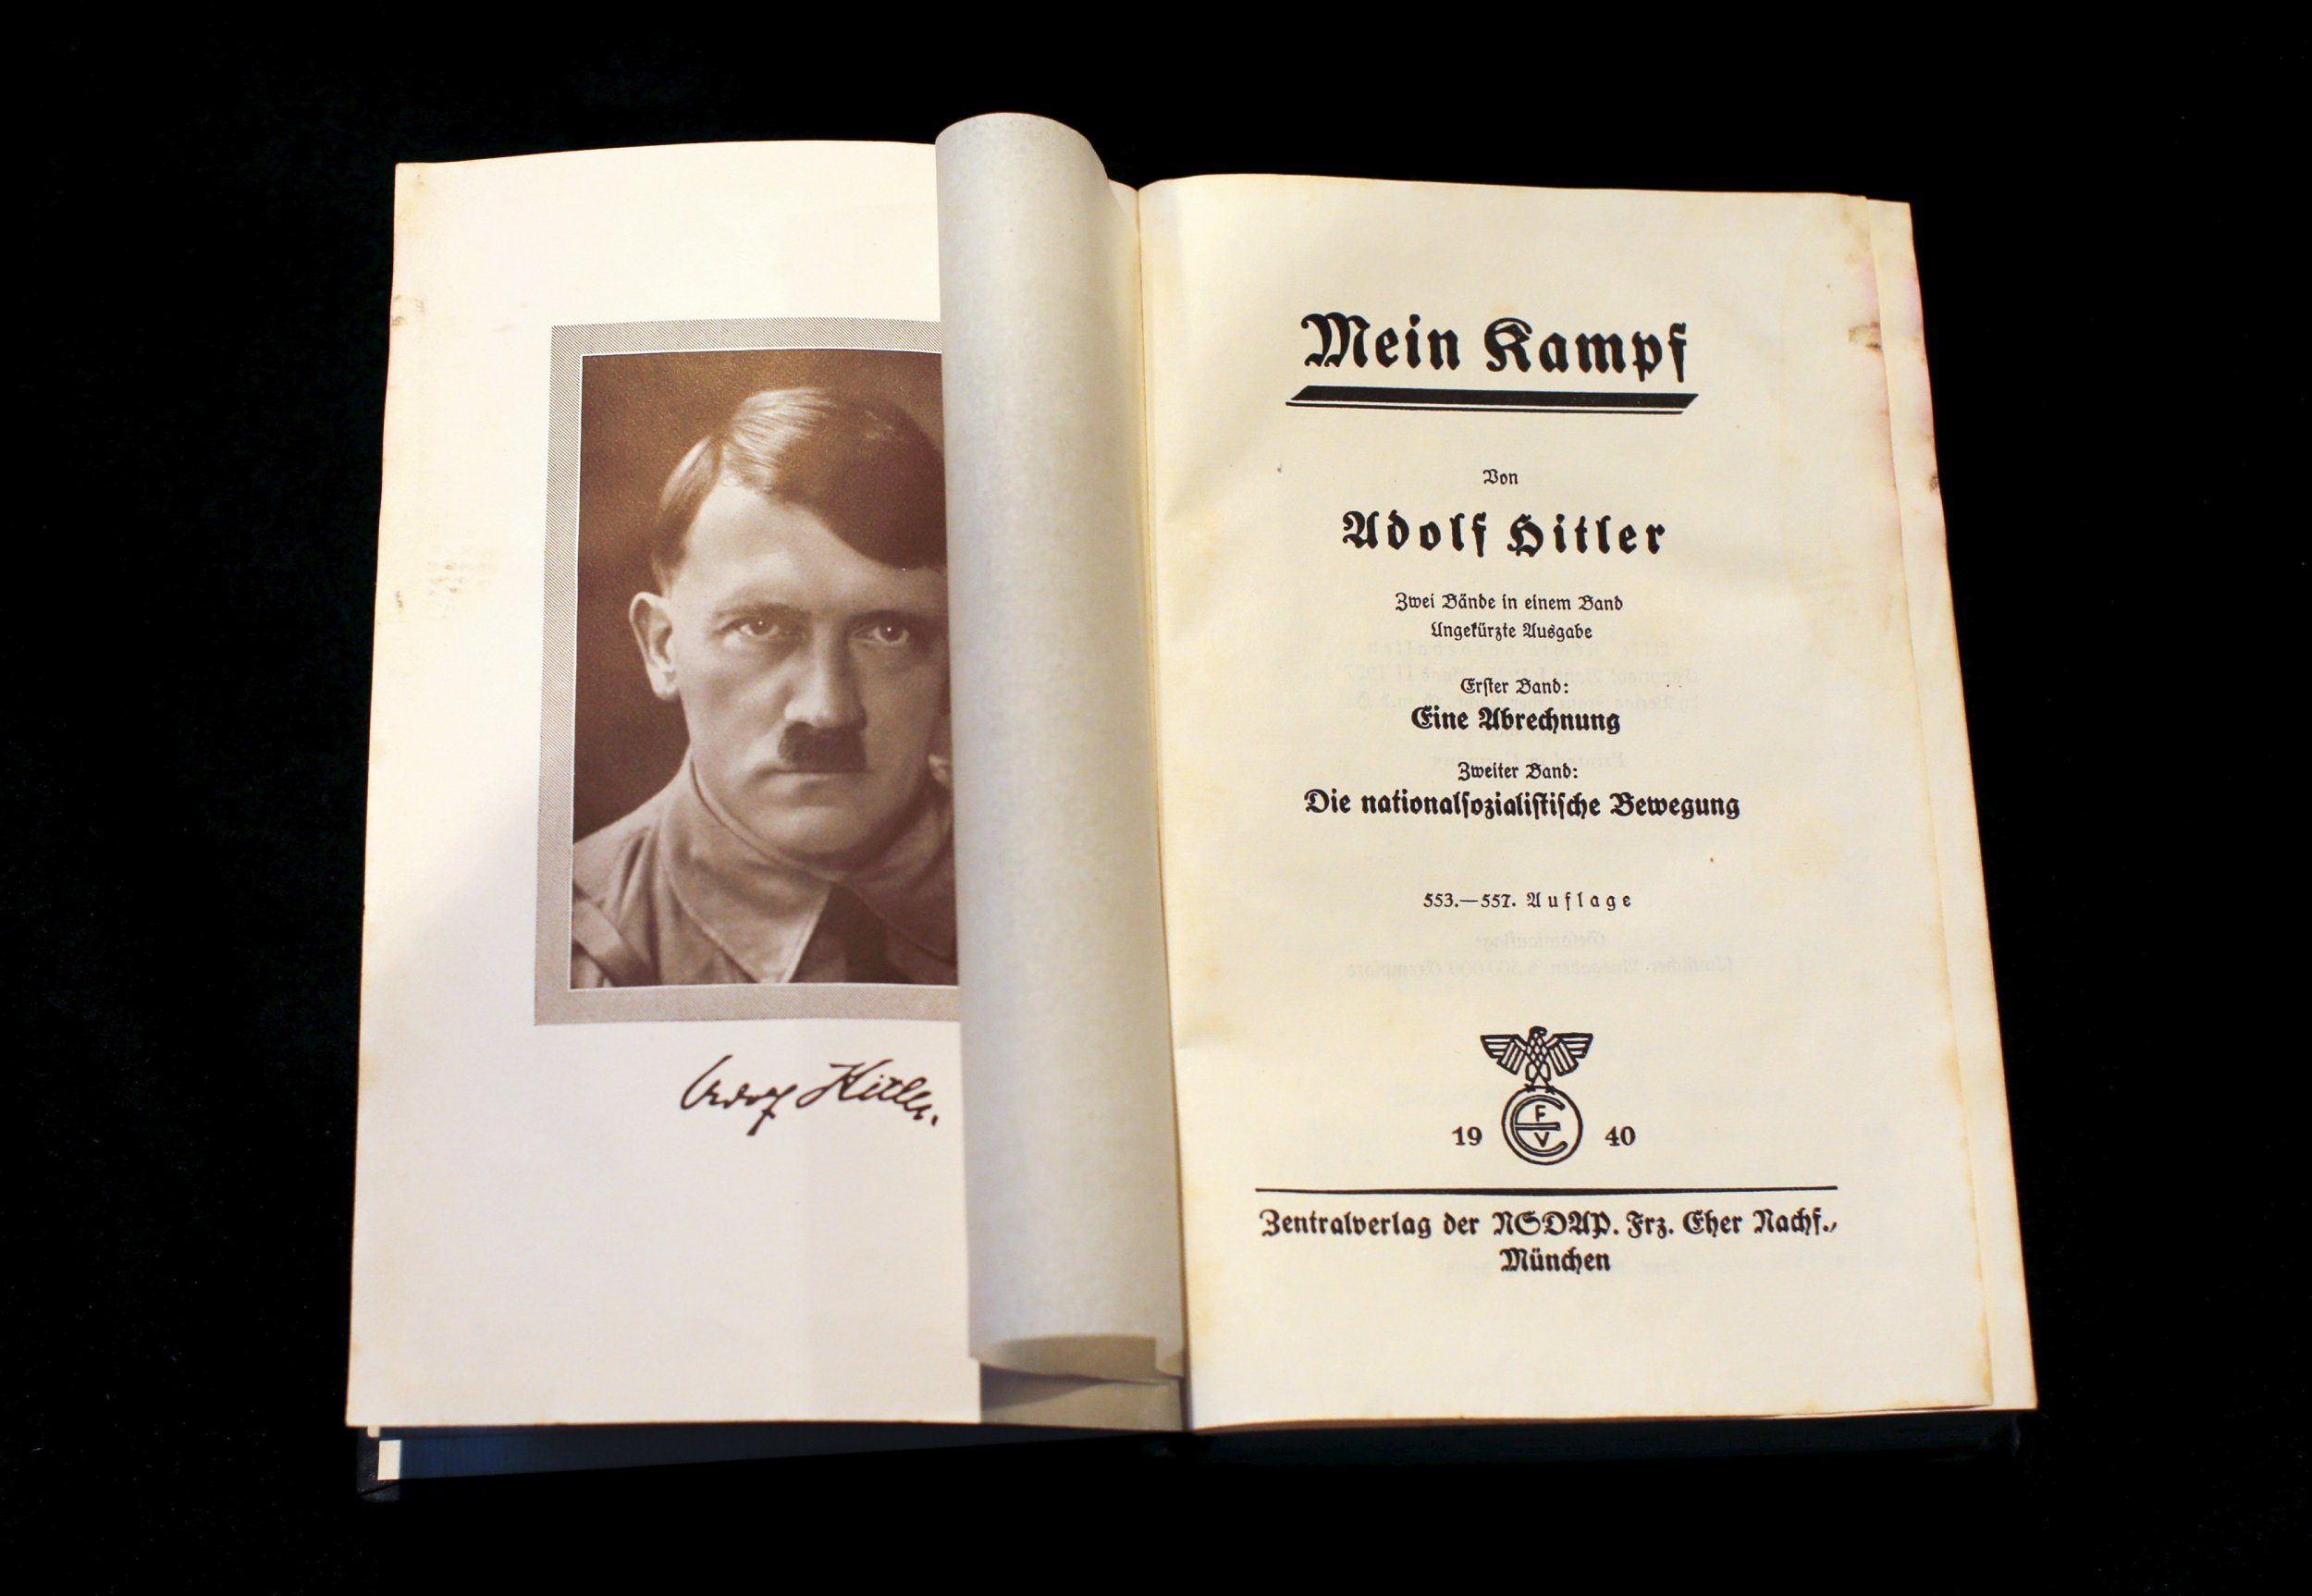 mein kamf the struggle of adolf hitlers political development A very insightful analysis of the hitler mind and of his fascinating appeal to the  masses  to be one of the most perceptive obervers of the political reality of the  first half  nevertheless, simply on the internal evidence of mein kampf, it is  difficult to  is the rigidity of his mind, the way in which his world-view doesn't  develop.